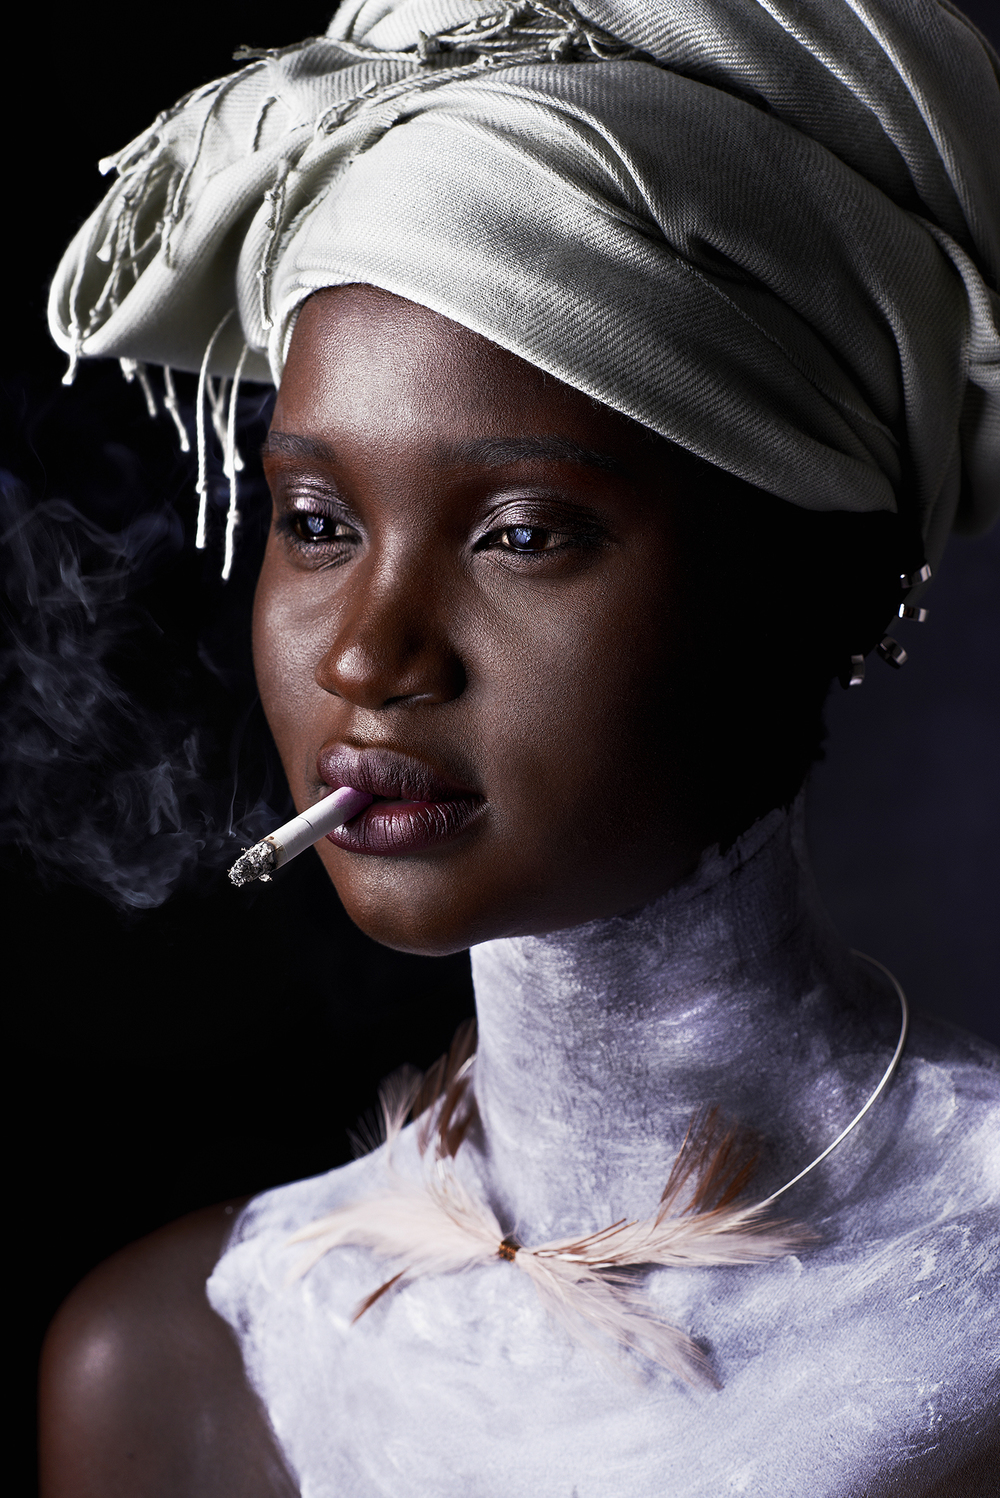 GARAGE MAGAZINE. ATAUI DENG WEARING SIMON ALCANTARA STERLING SILVER WIRE CHOKER HAND WOVEN WITH CHAMPAGNE FEATHERS $295.00 TO PURCHASE PLEASE  USE THE Contact Us PAGE.